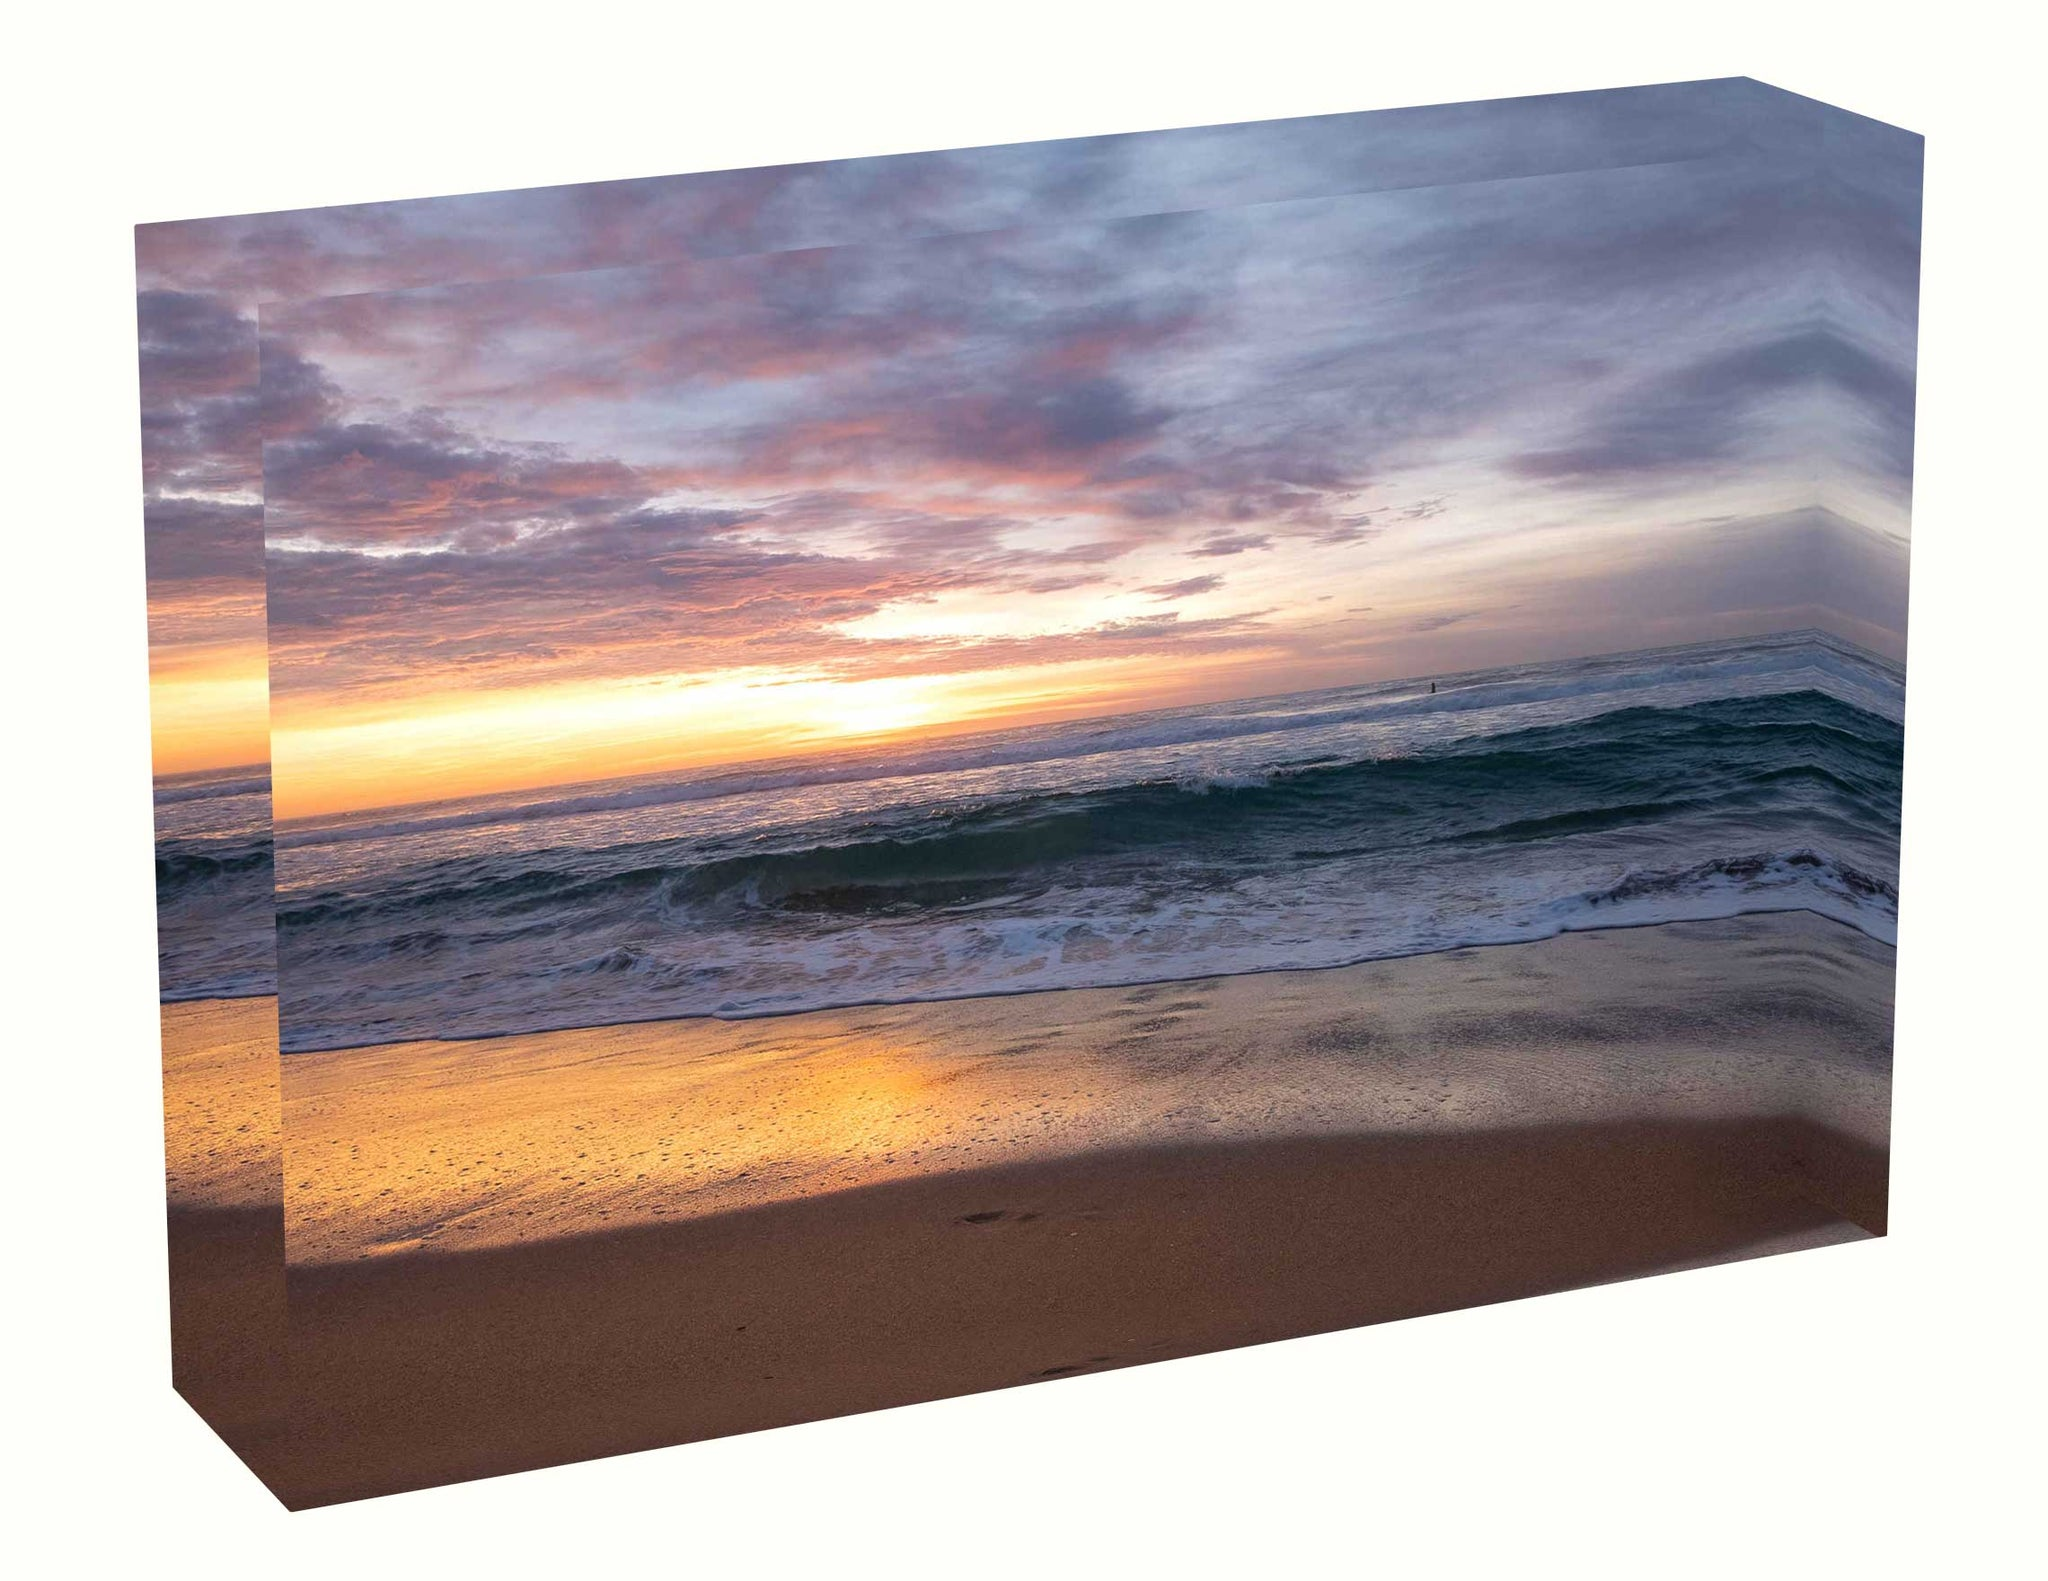 Acrylic block Sunrise photo from the 16th April 2020 at Manly beach in Sydney